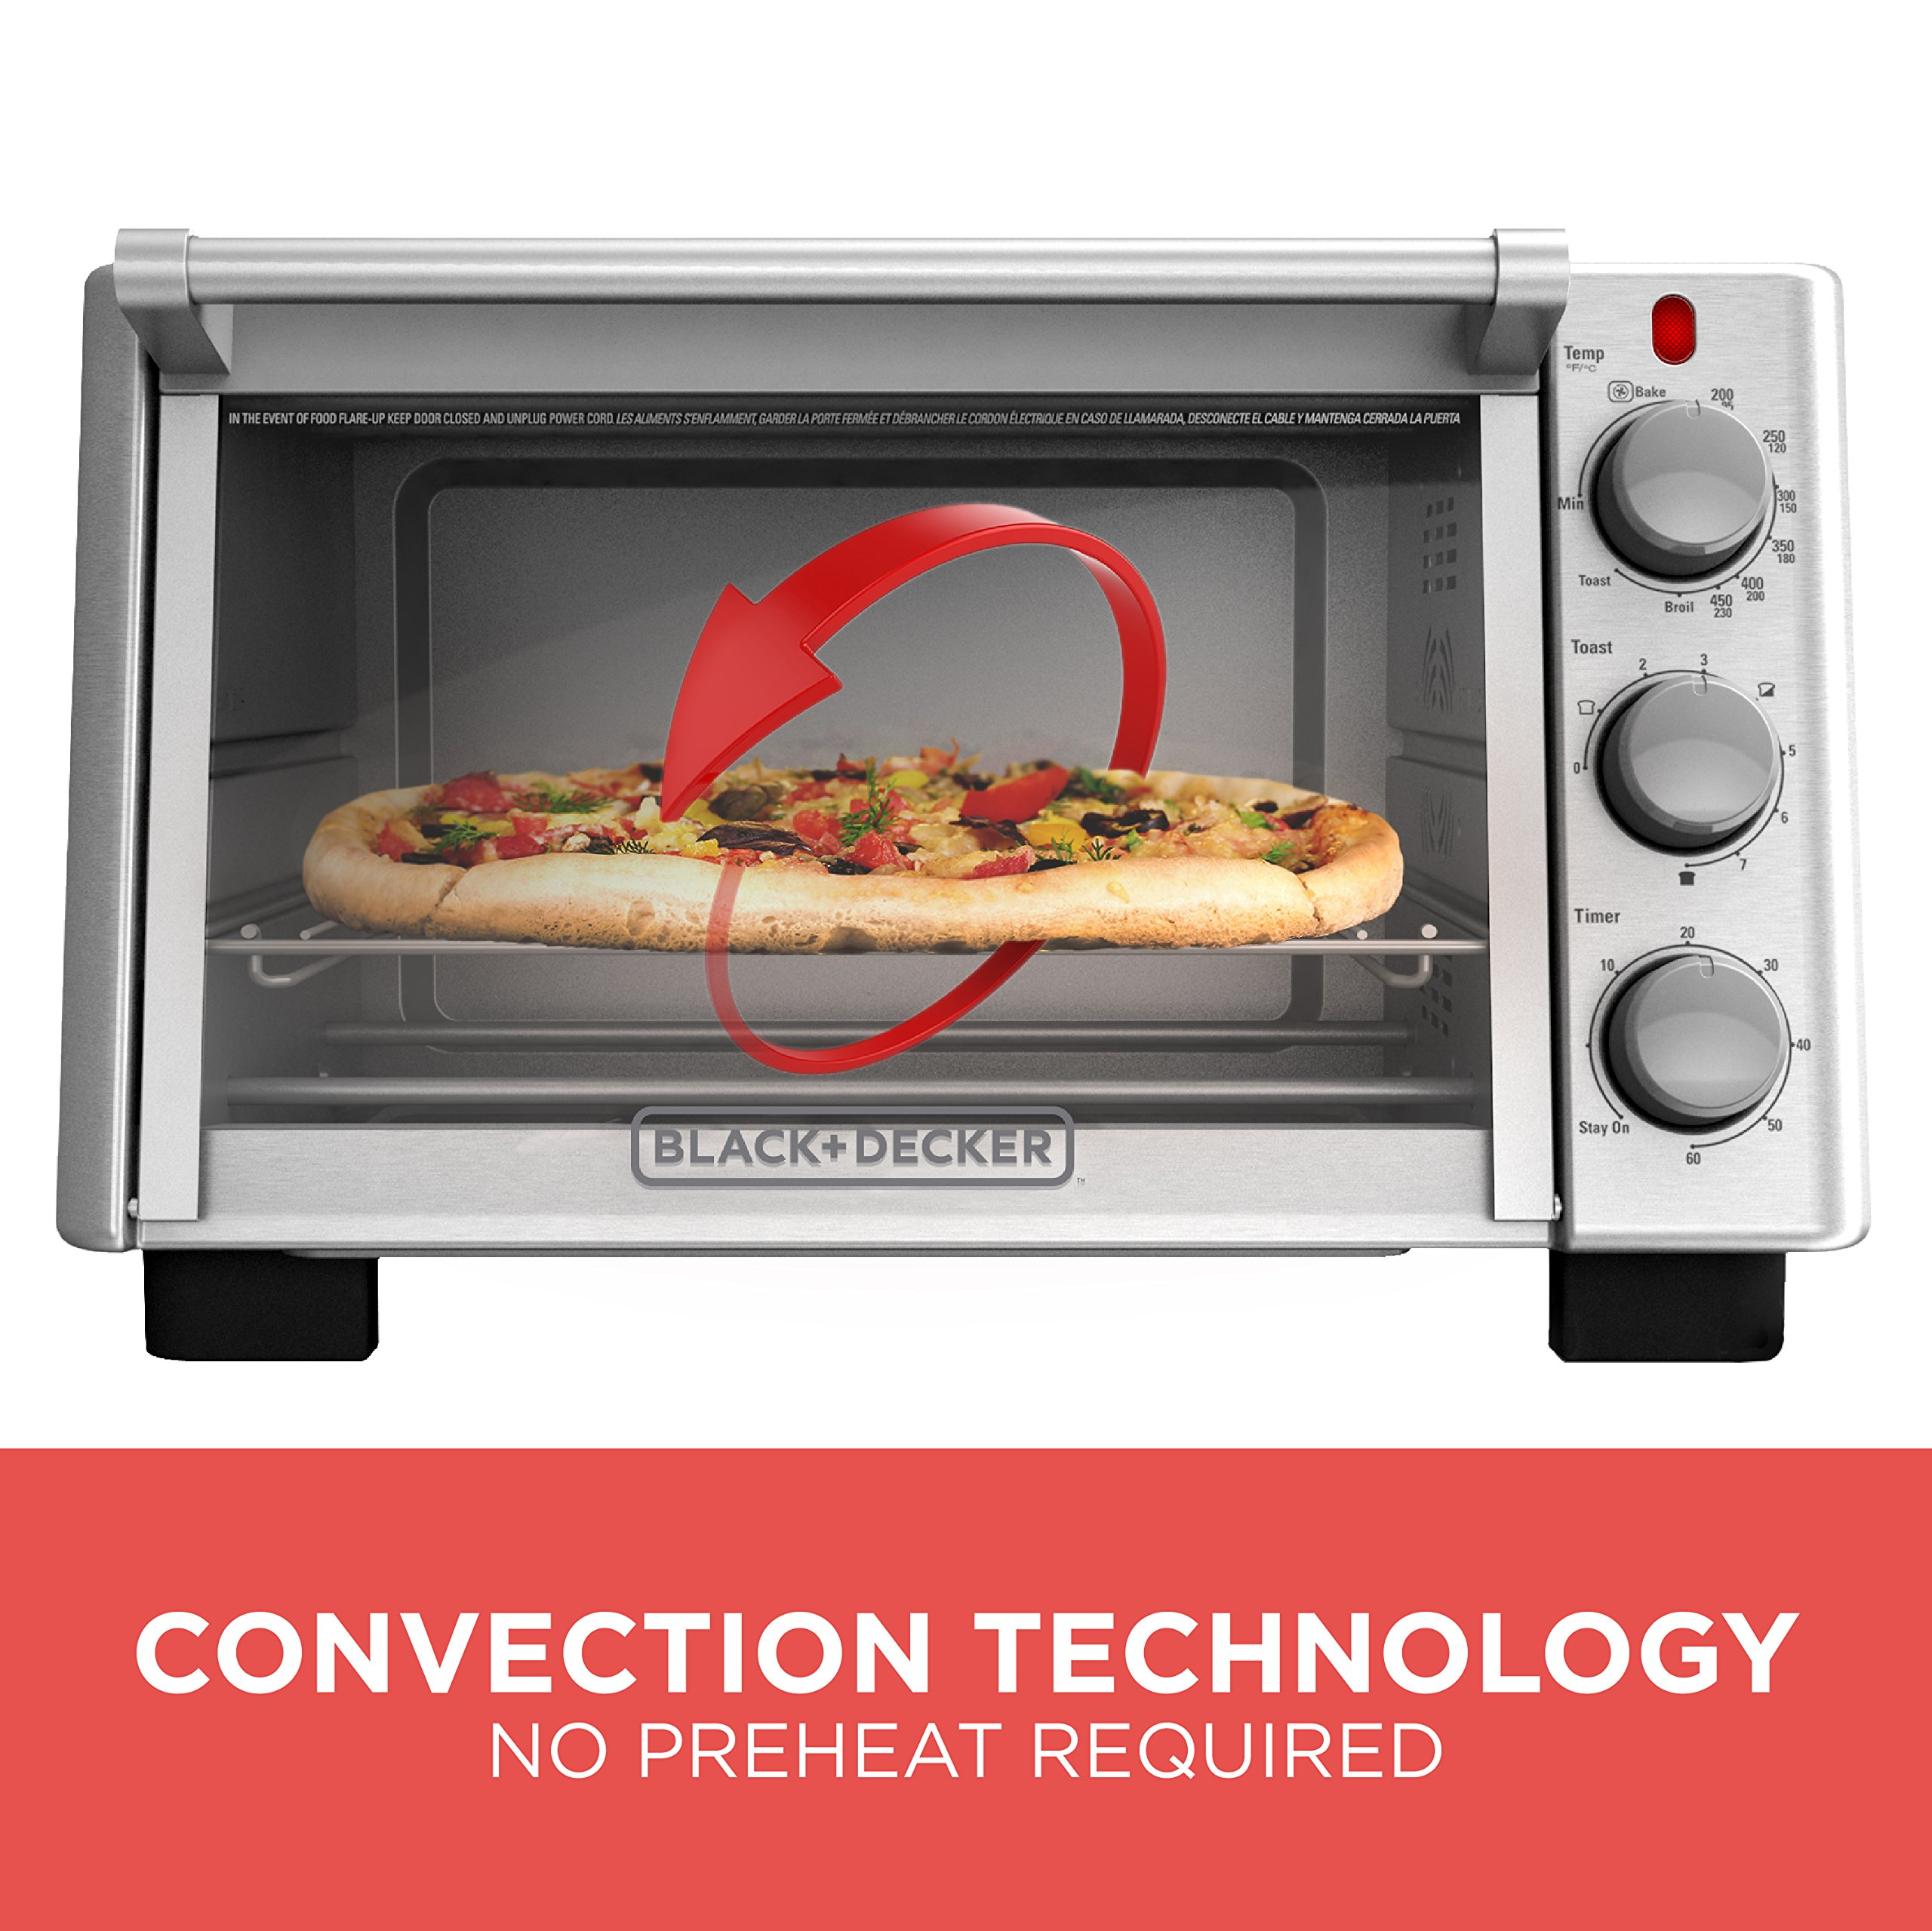 BLACK+DECKER 6-Slice Convection Countertop Toaster Oven, Stainless Steel/Black, TO2050S by BLACK+DECKER (Image #4)